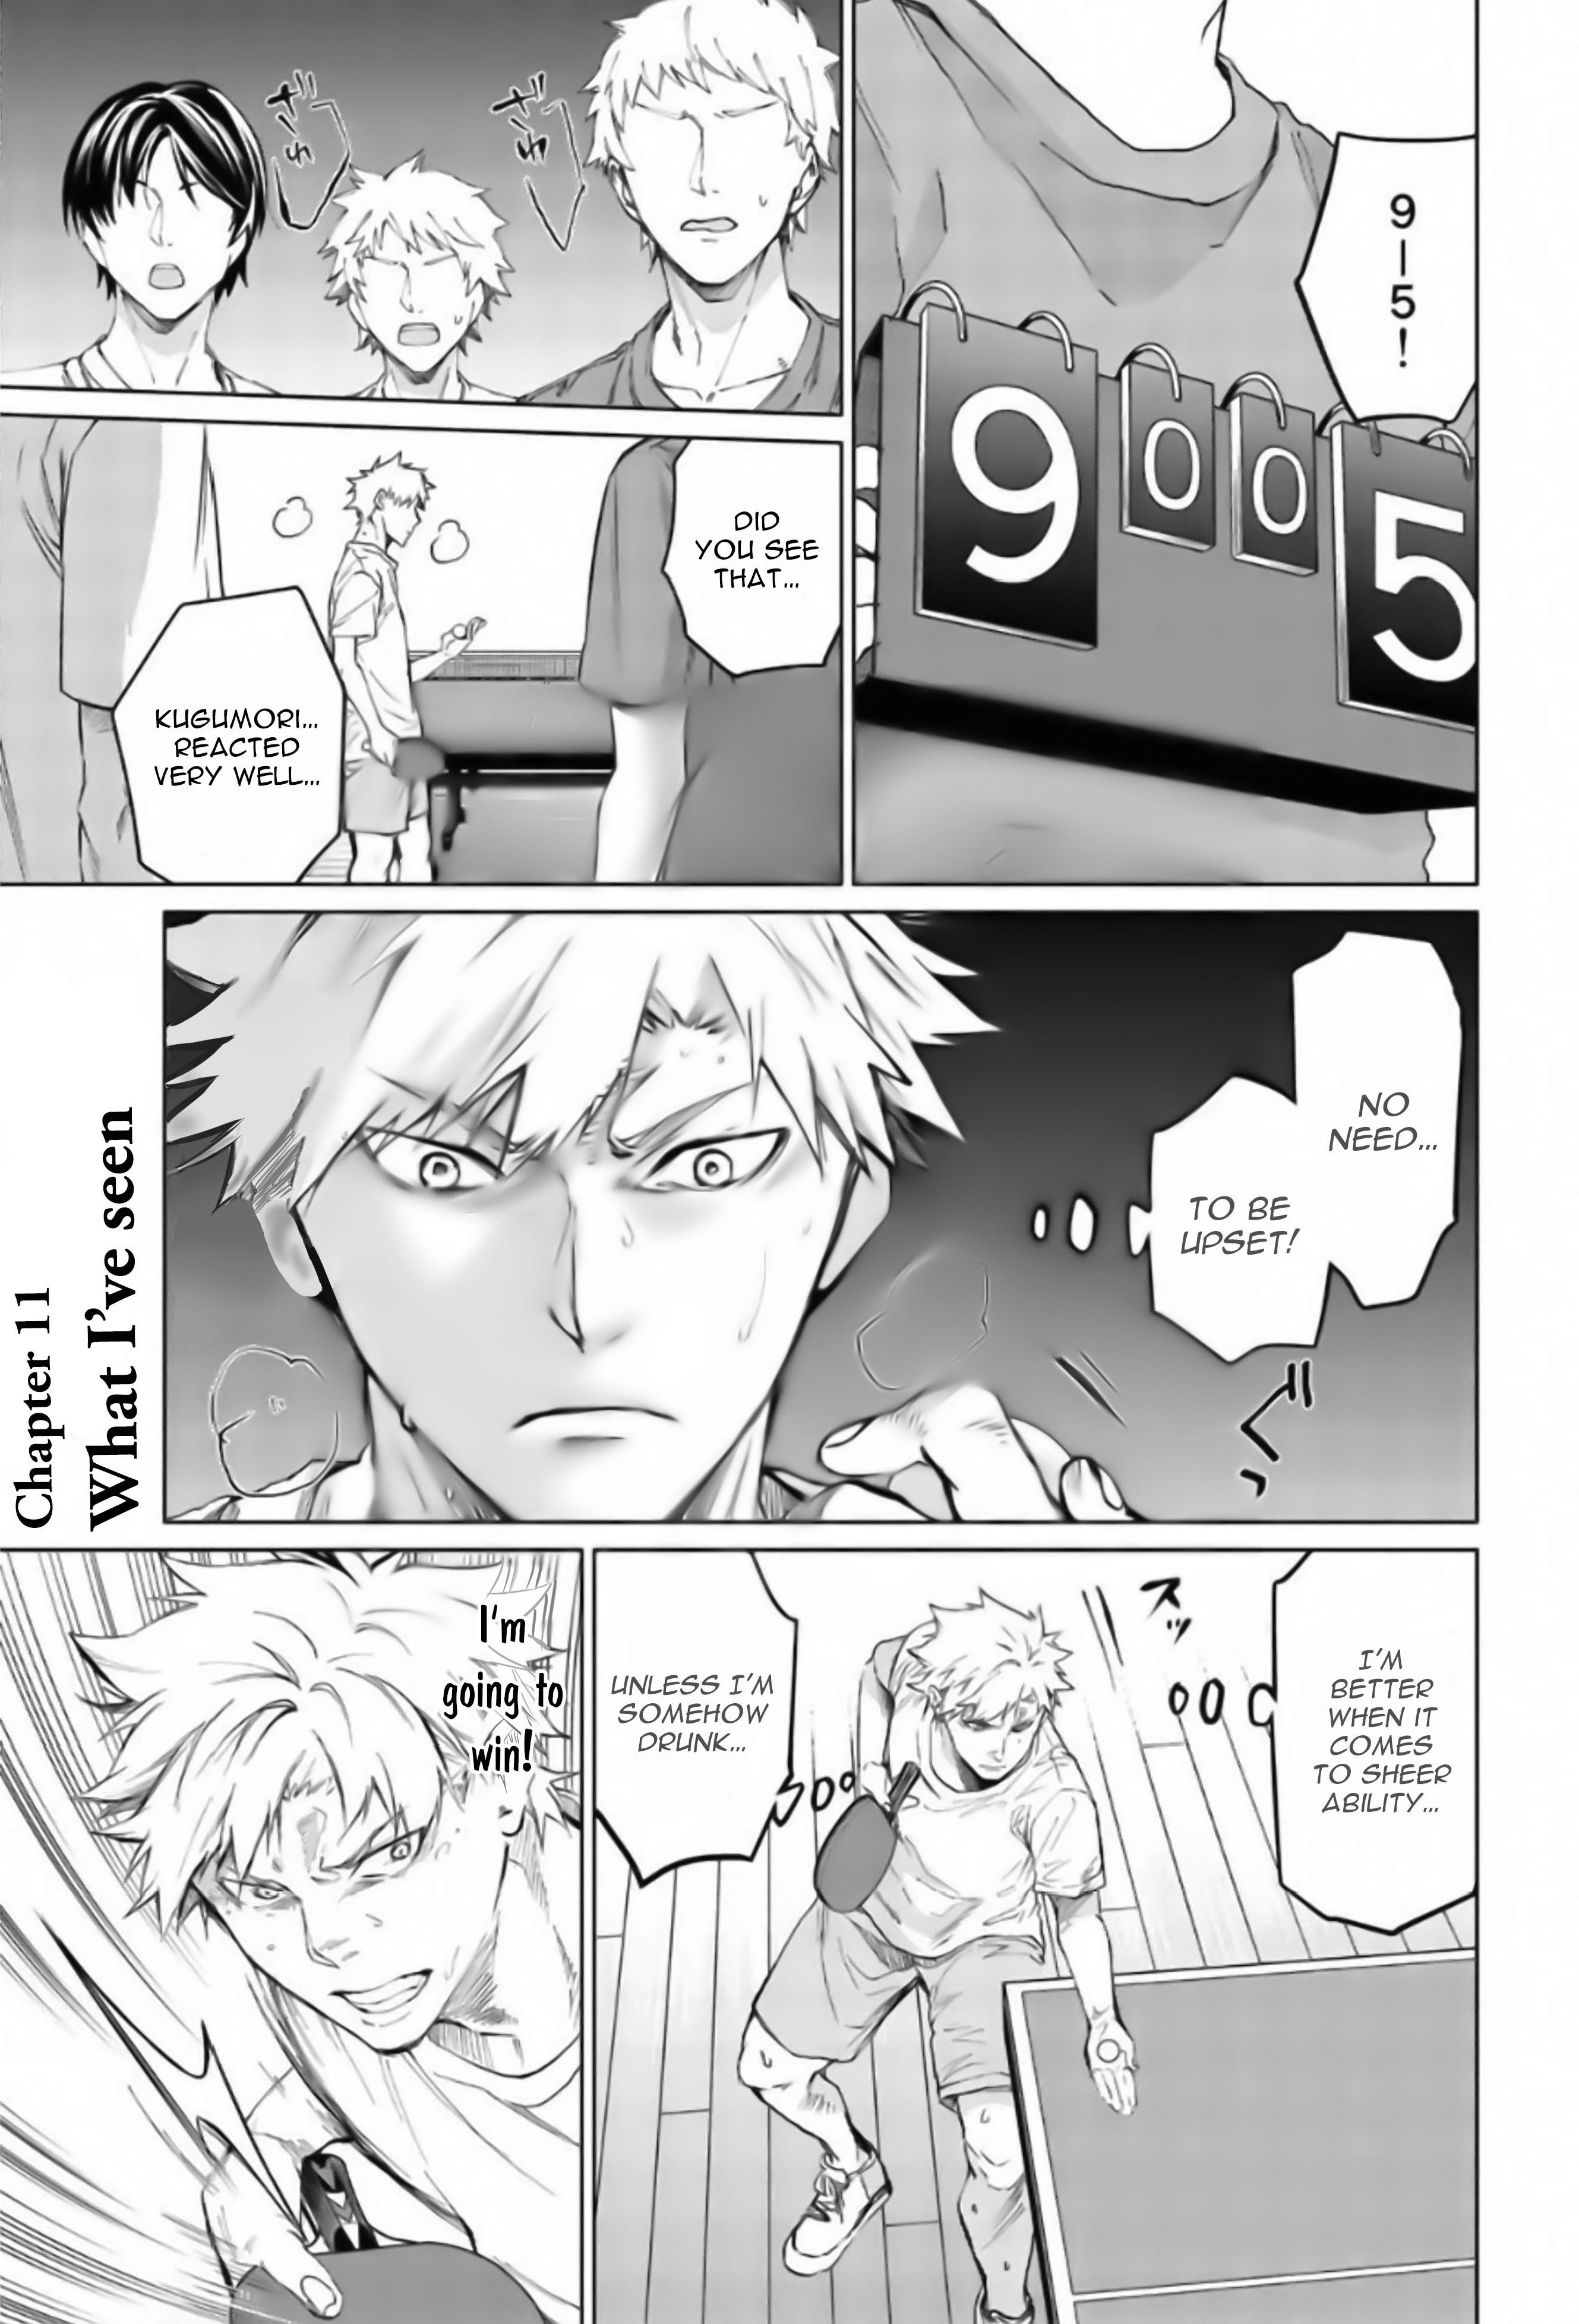 Aoiro Ping Pong - chapter 11 - #1